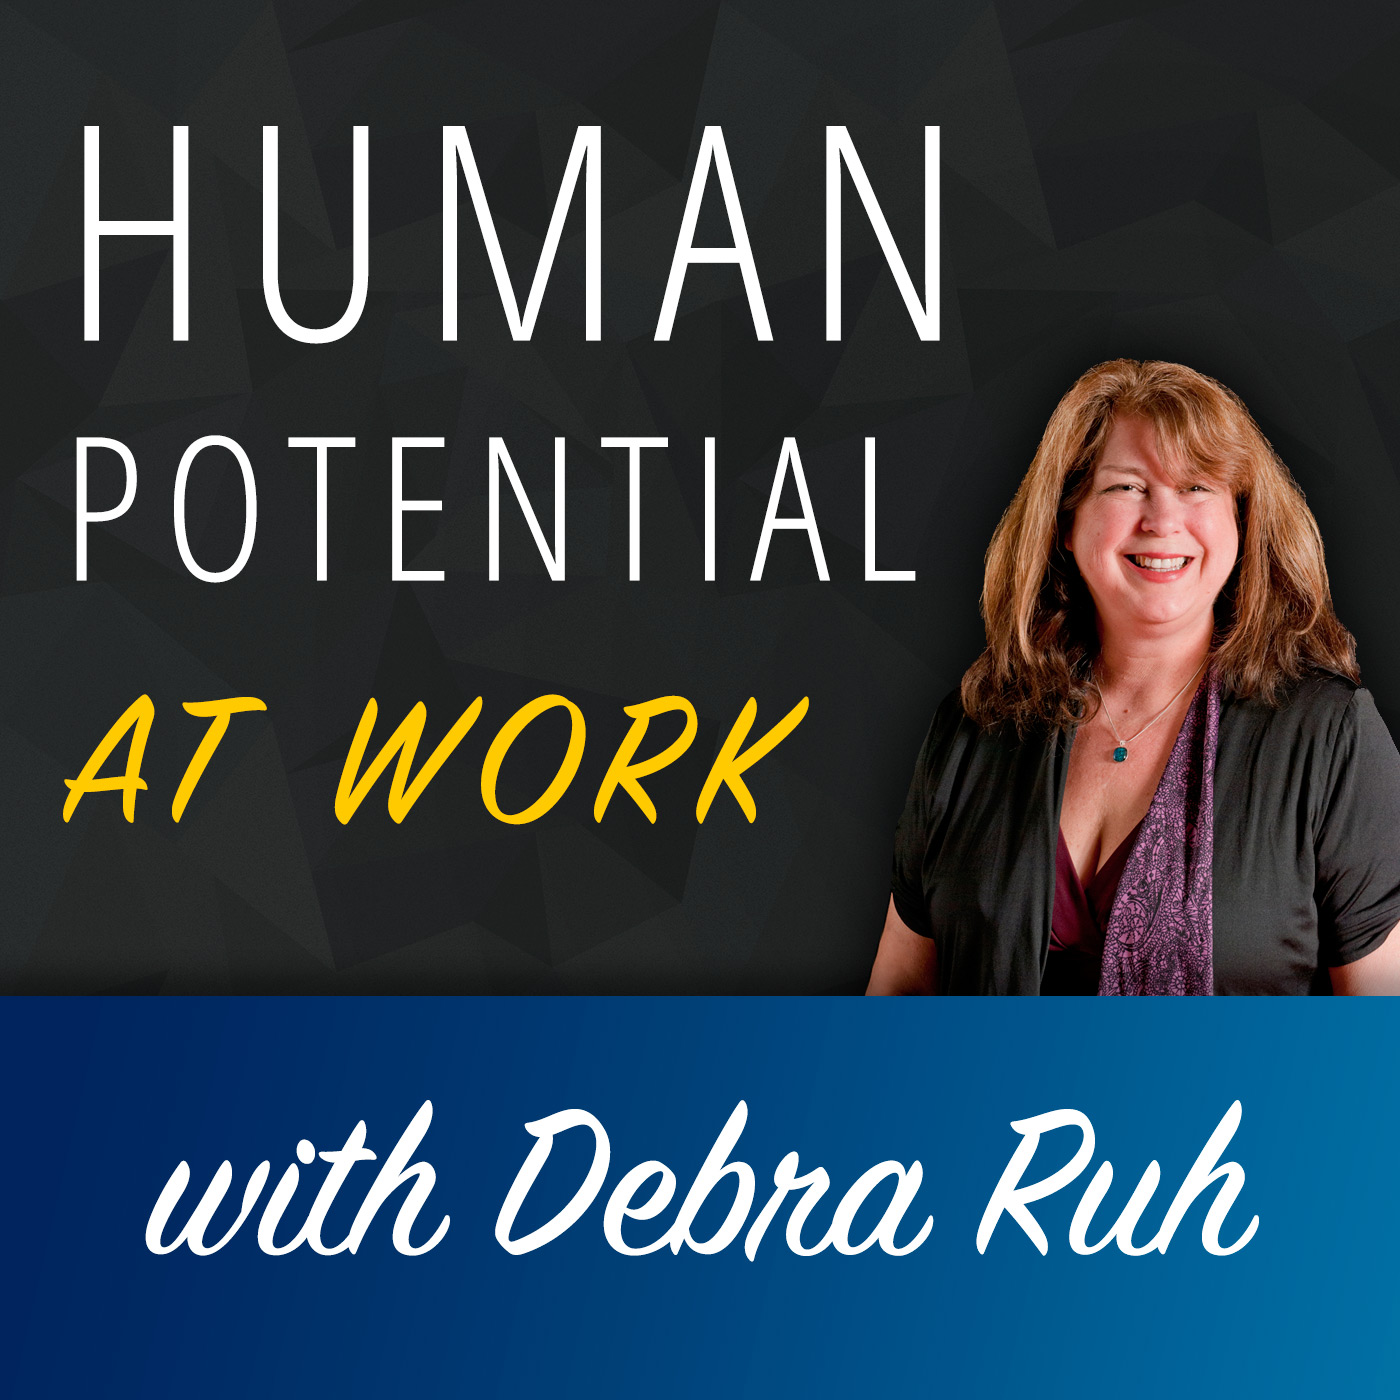 Human Potential at Work